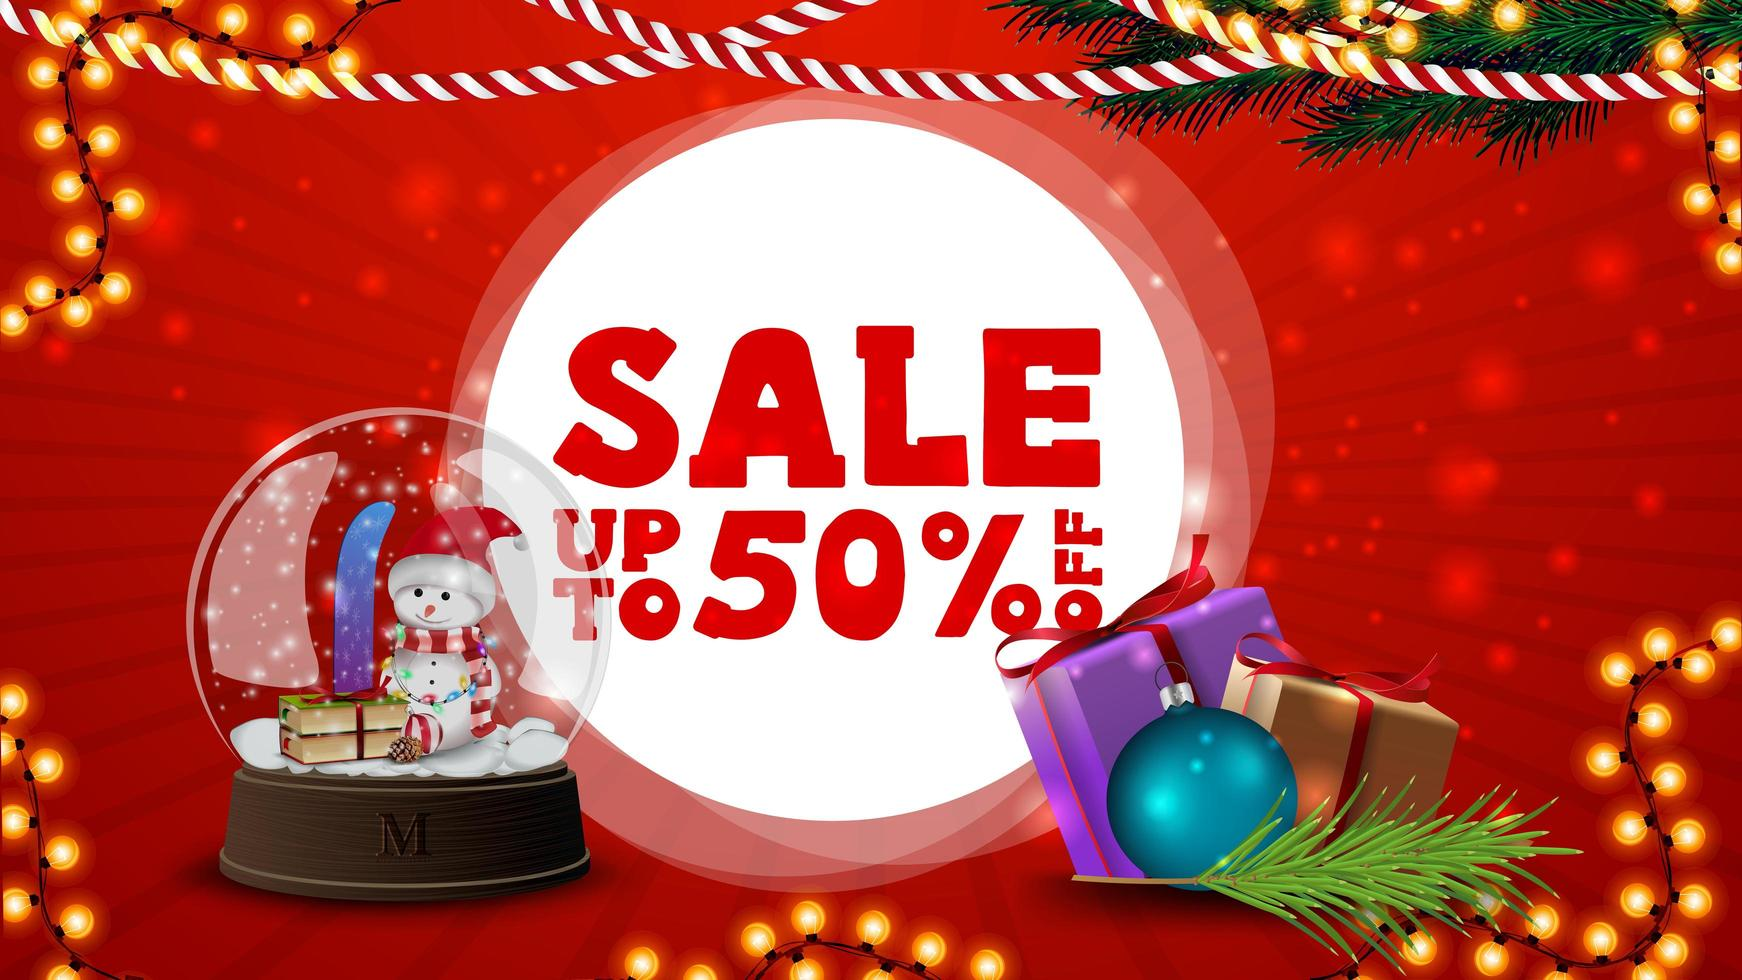 Christmas sale, up to 50 off, red discount banner for website with Christmas decor, presents and snow globe vector